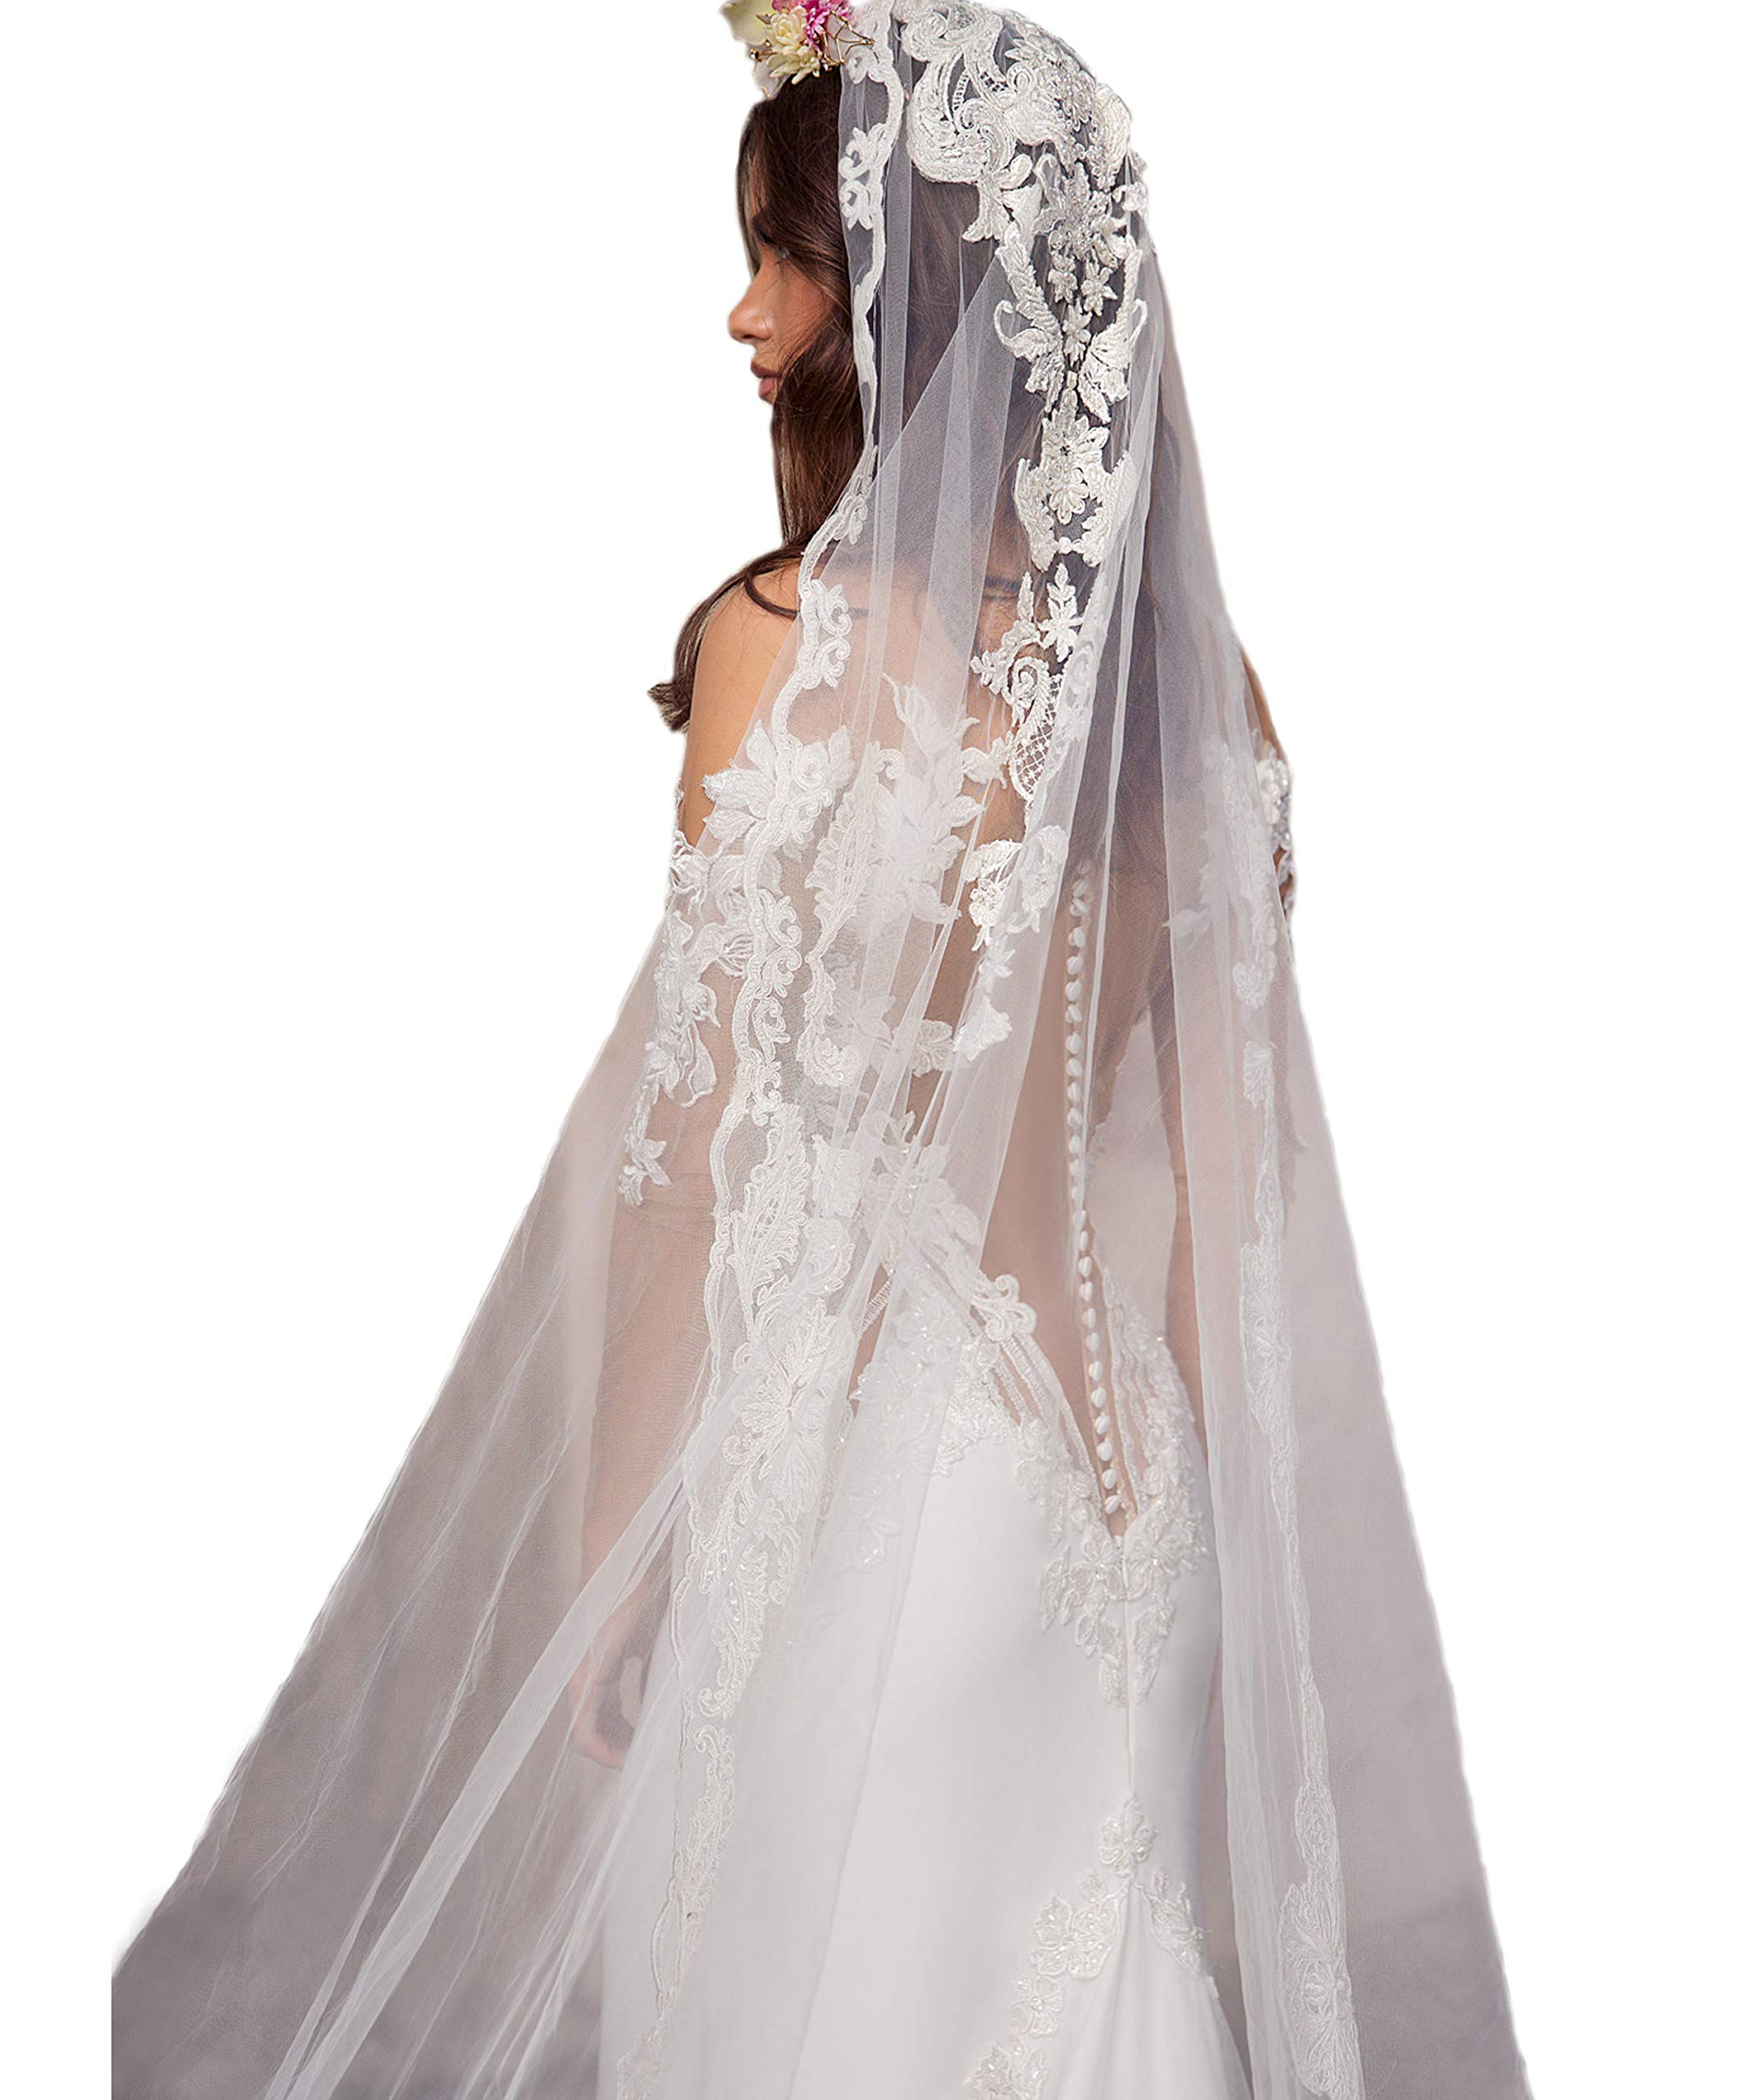 Passat Ivory 1T Long Cathedral Beads Embroidered Floral Garland Lace Bridal Veils And Headpieces H73